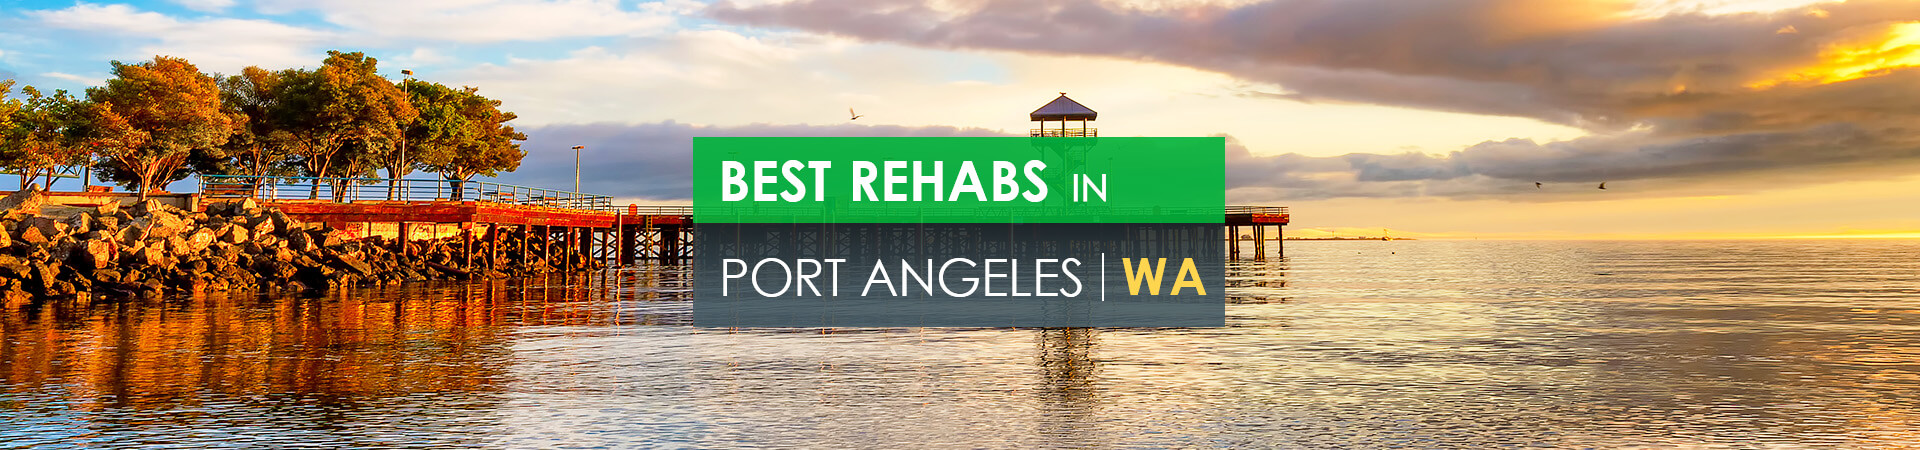 Best rehabs in Port Angeles, WA